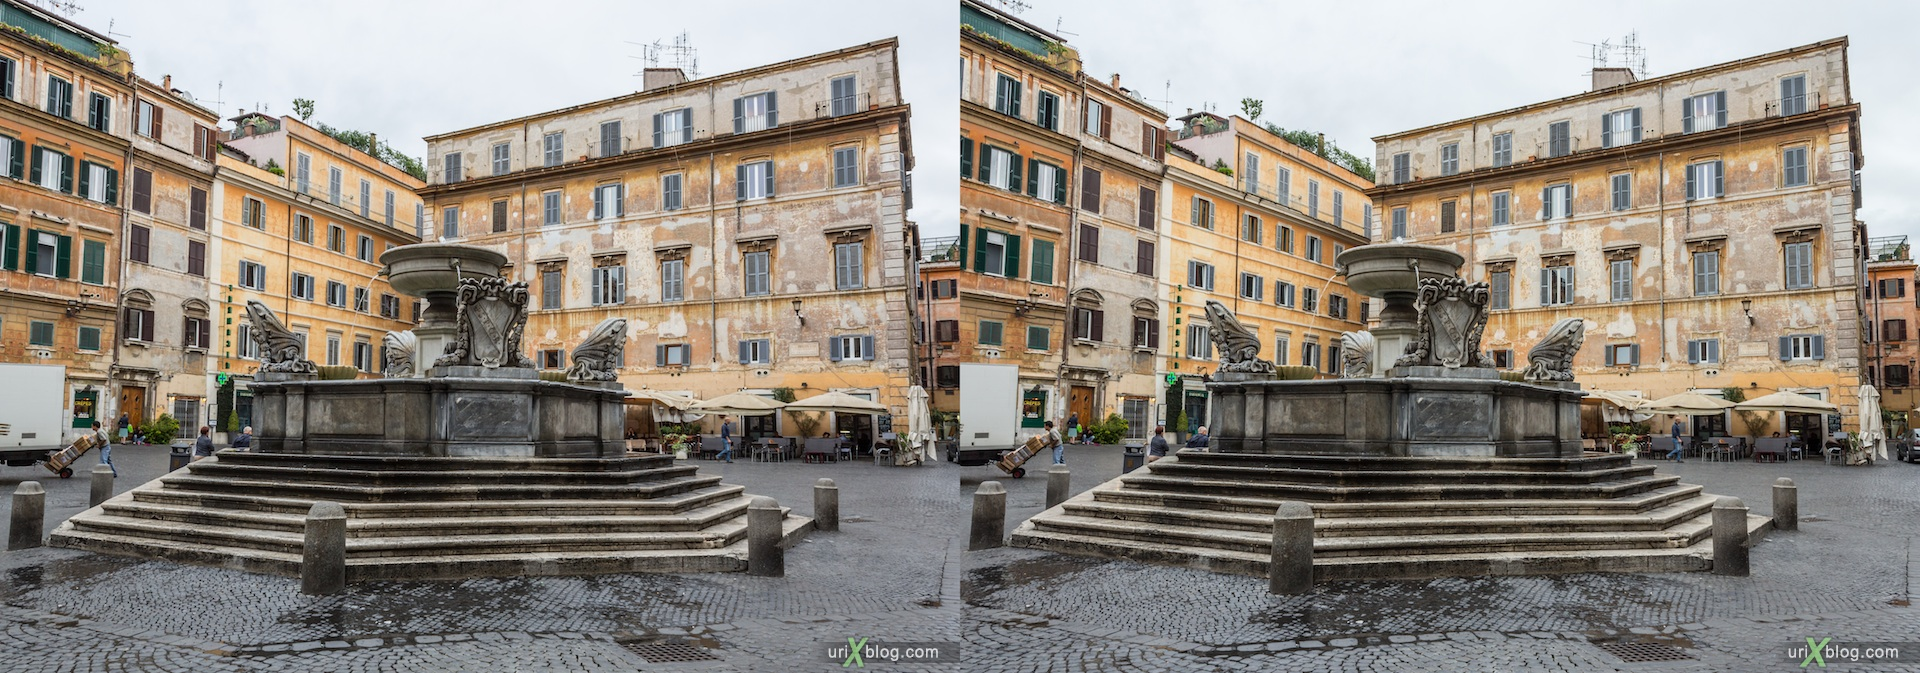 2012, fountain, Santa Maria in Trastevere, square, church, Rome, Italy, 3D, stereo pair, cross-eyed, crossview, cross view stereo pair